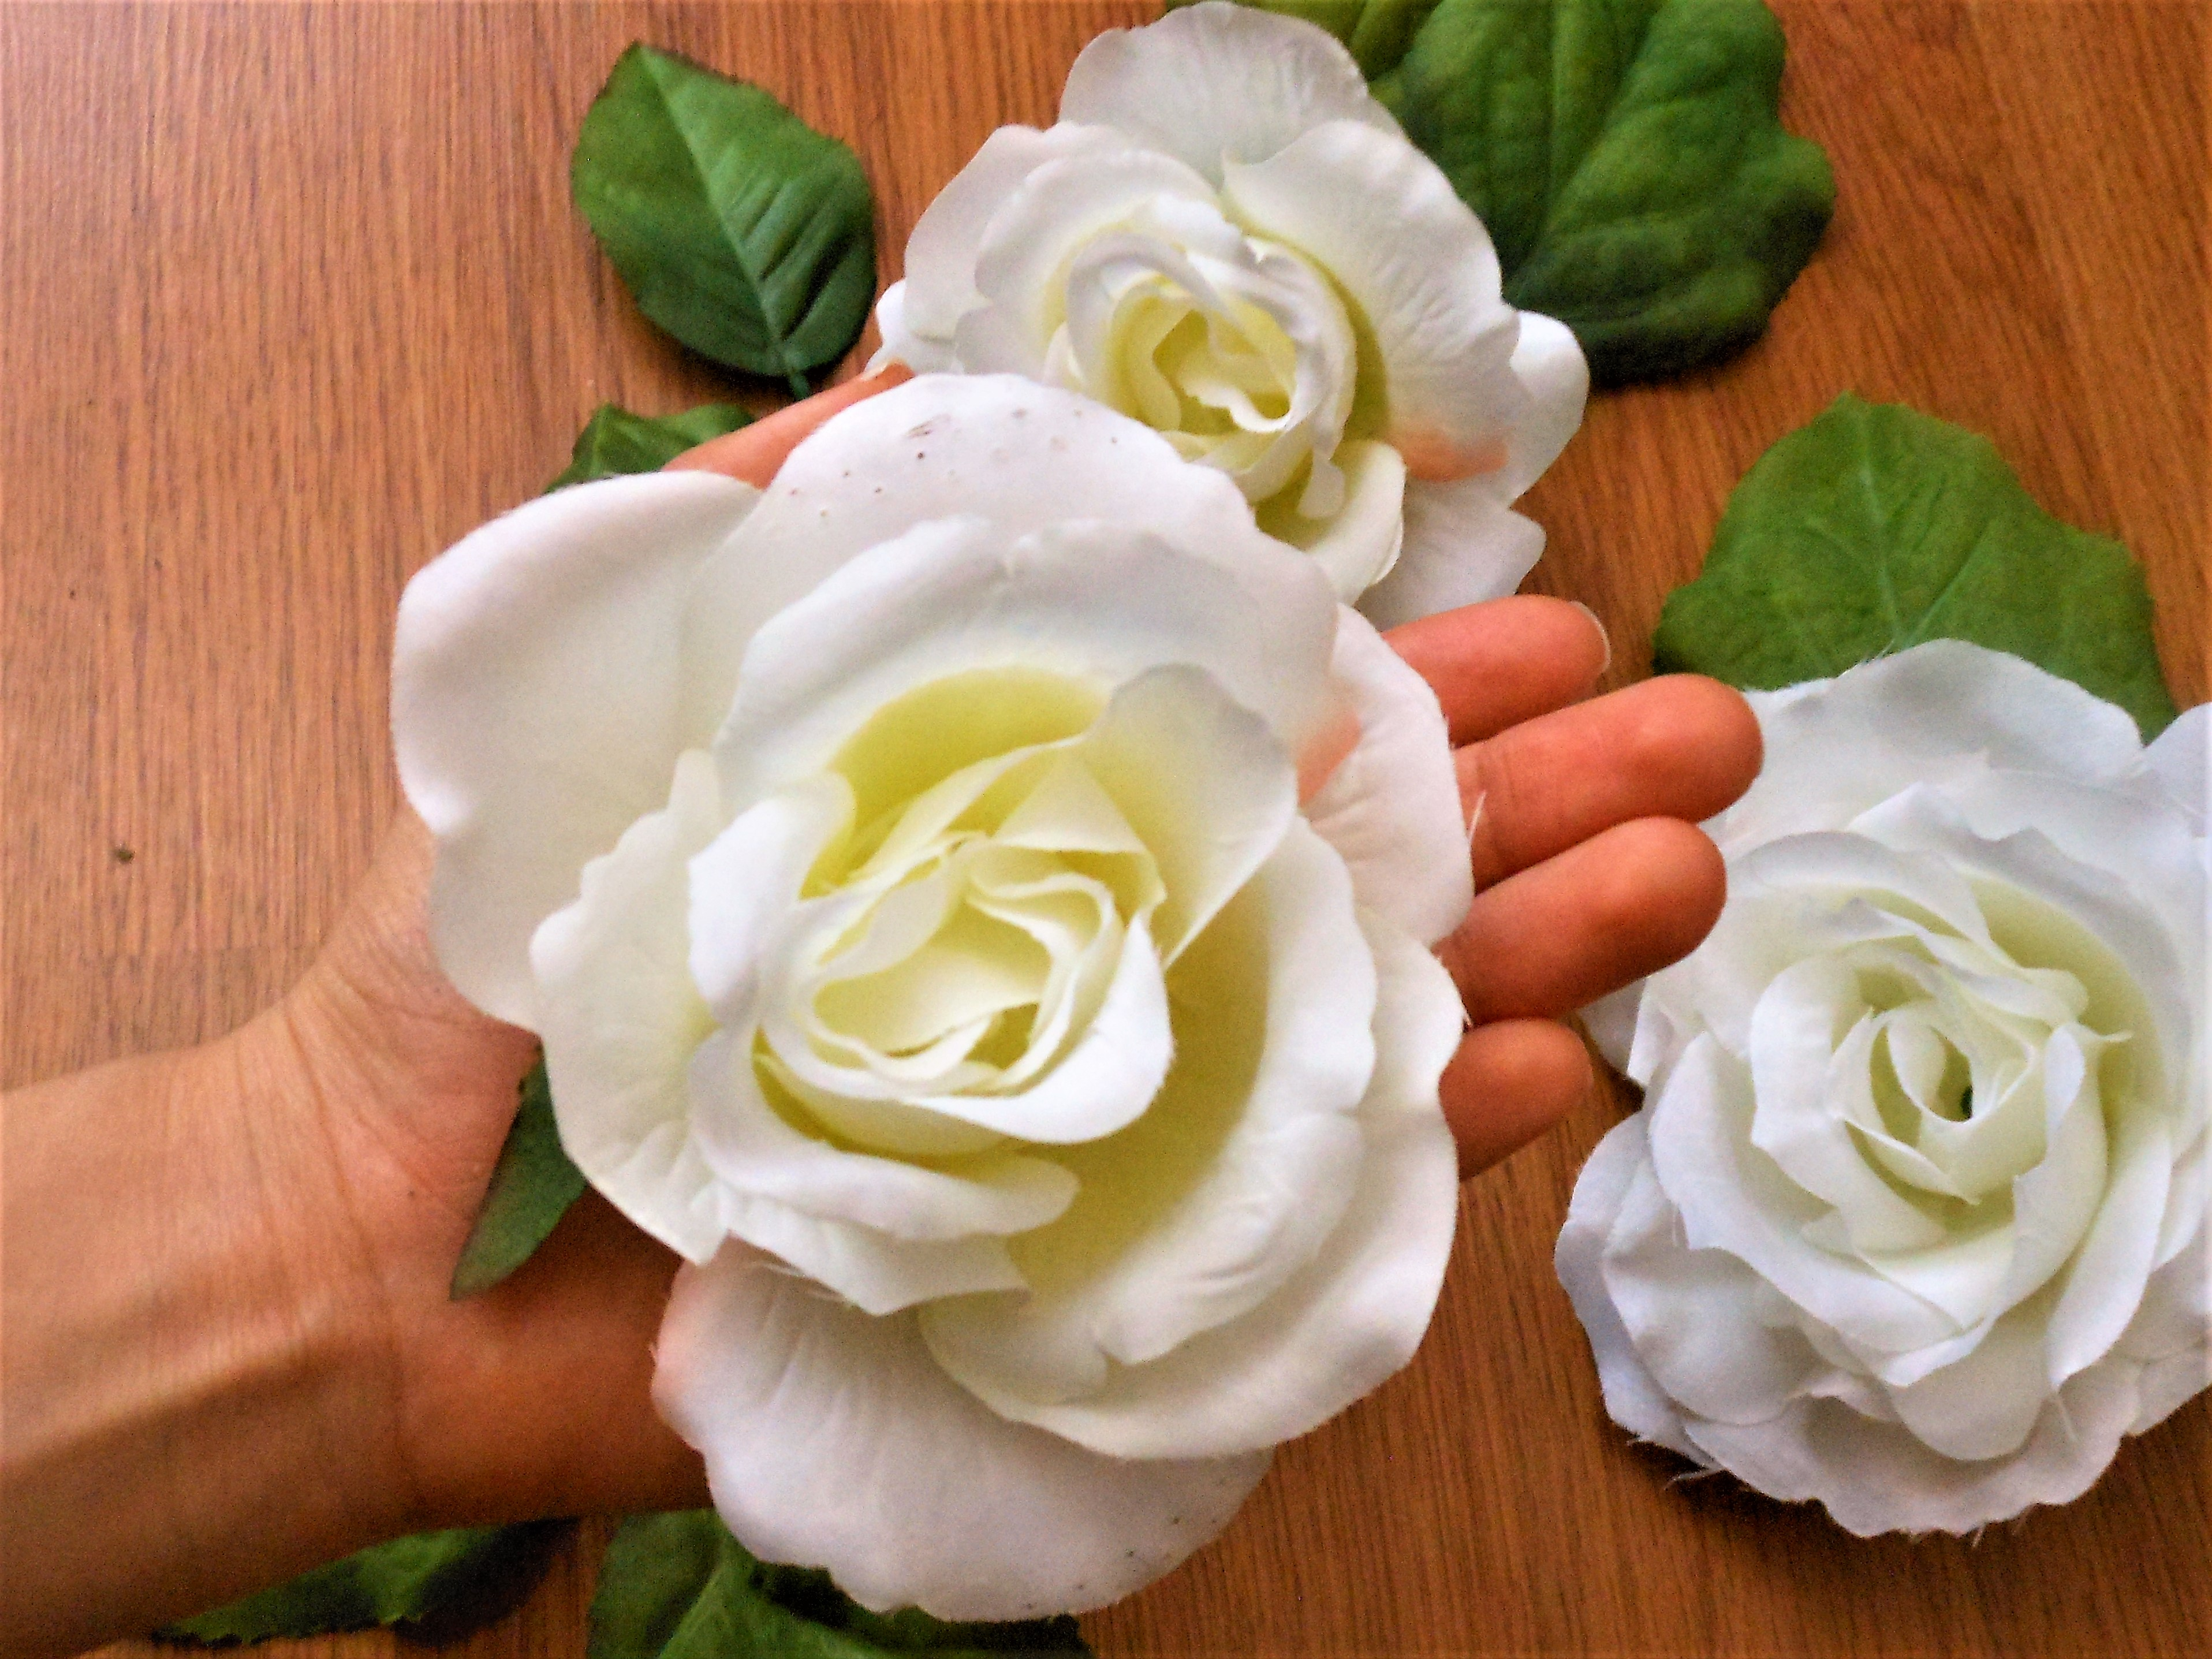 Artificial flowers for decoration